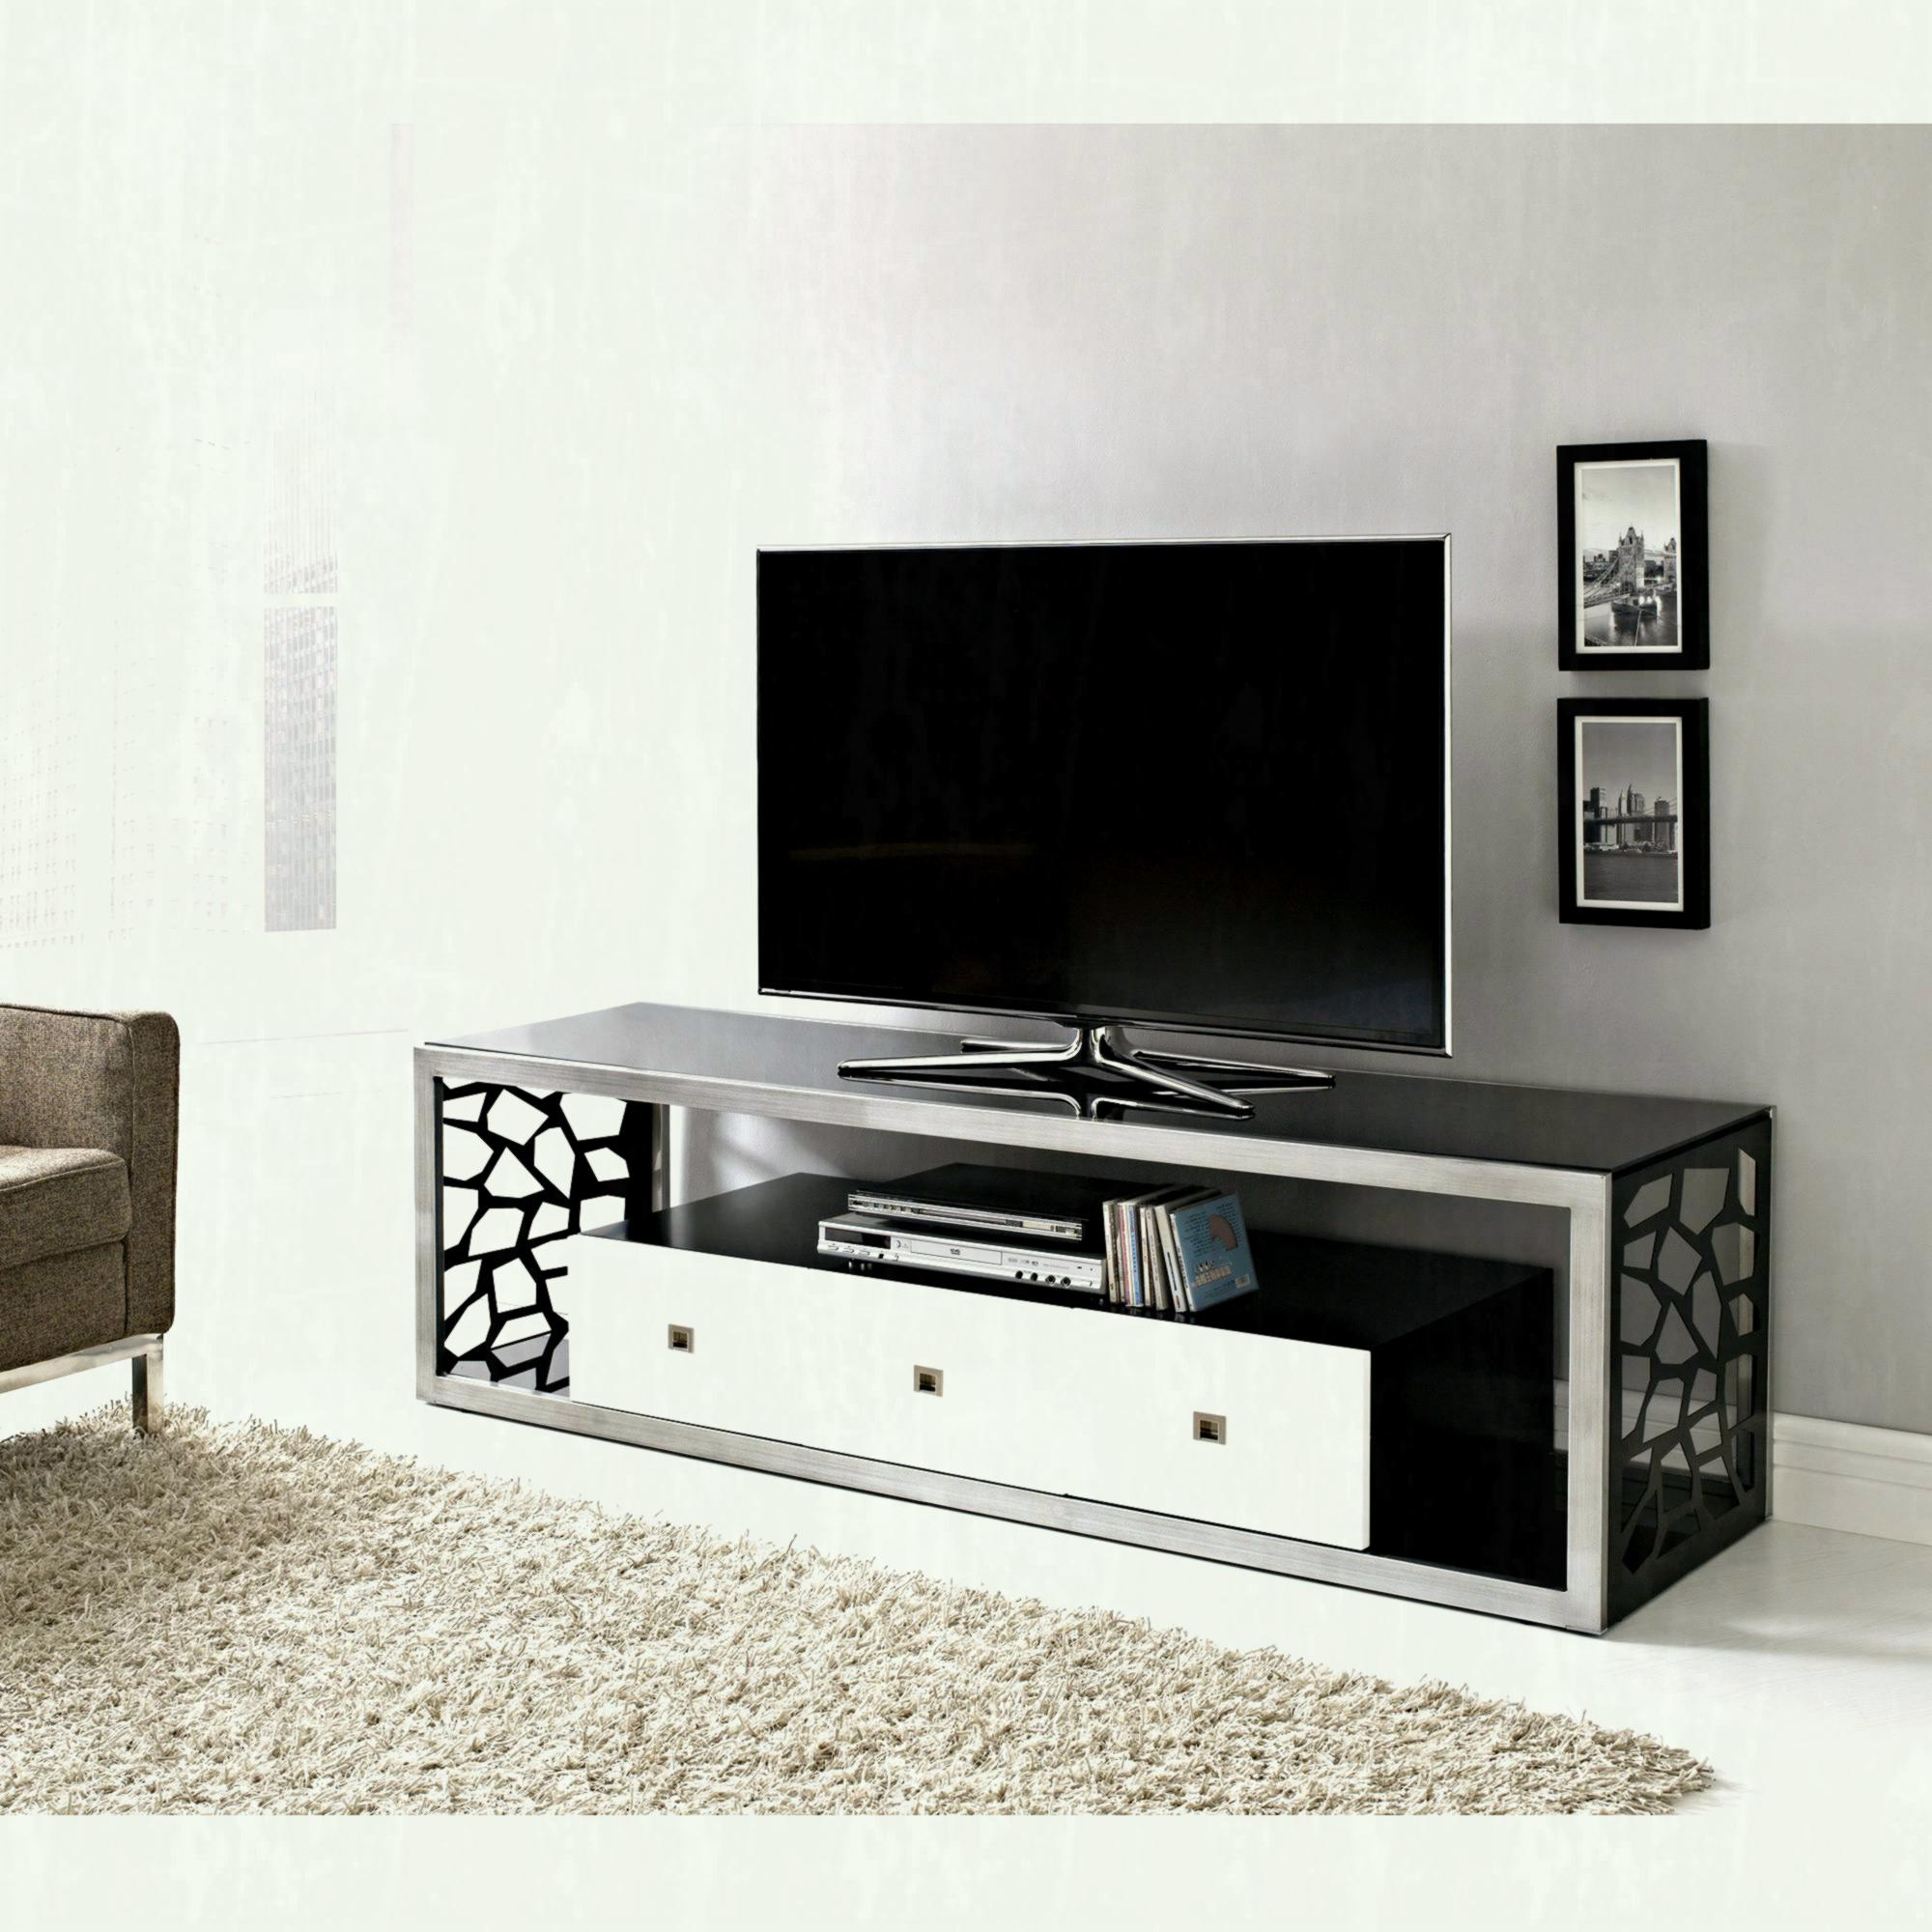 Fashionable Ultra Modern Tv Stands Intended For Ultra Modern Tv Stand Stands Costco Ikea Design Elegant Aquarium (Gallery 9 of 20)